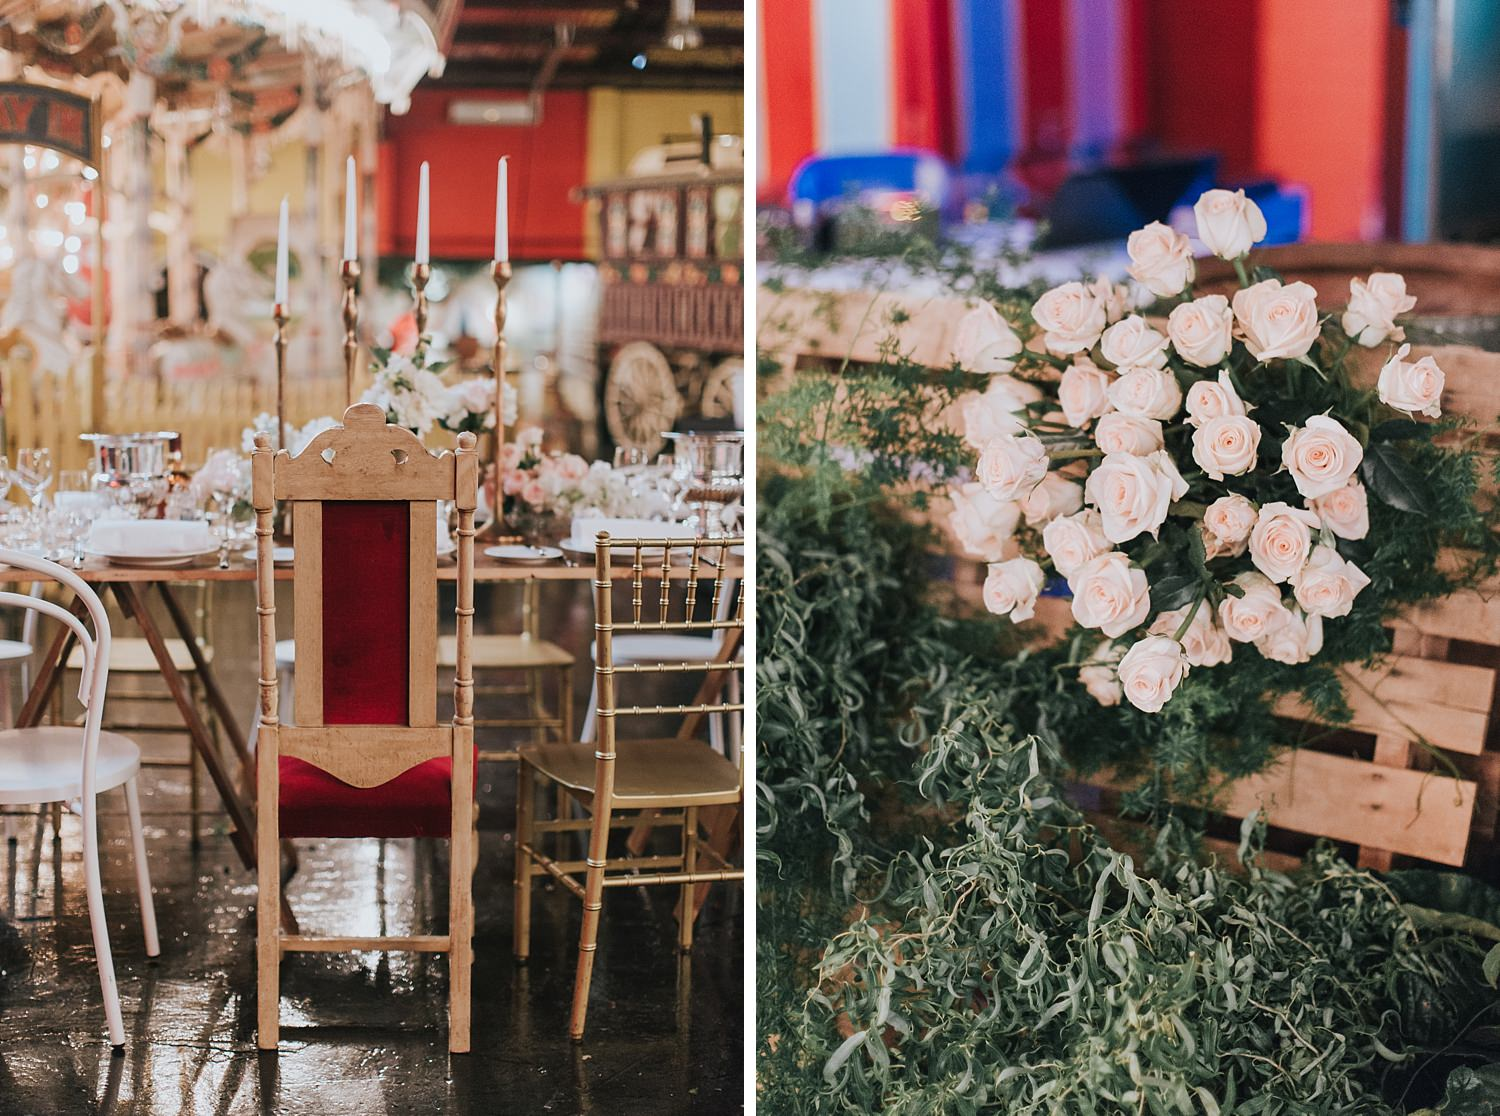 flowers and styling by she designs and she florals